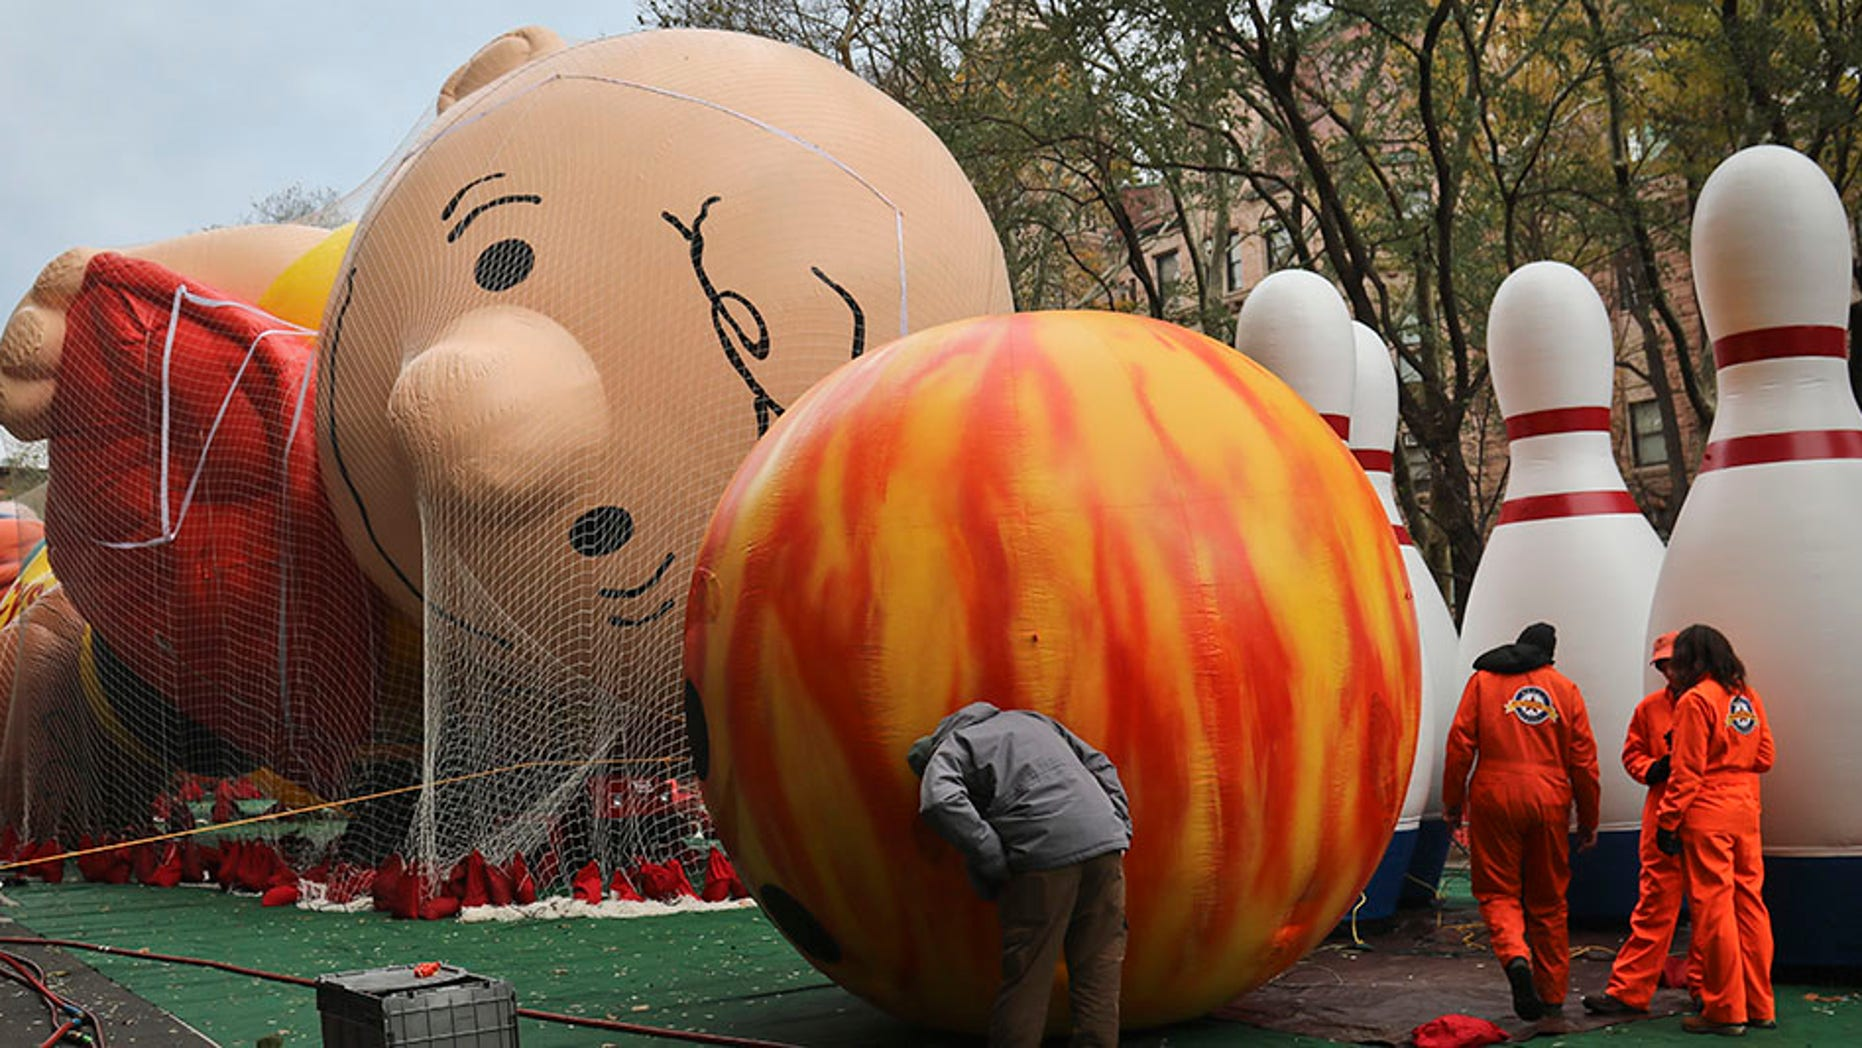 Despite wind, balloons fly at Macy's Thanksgiving Day parade